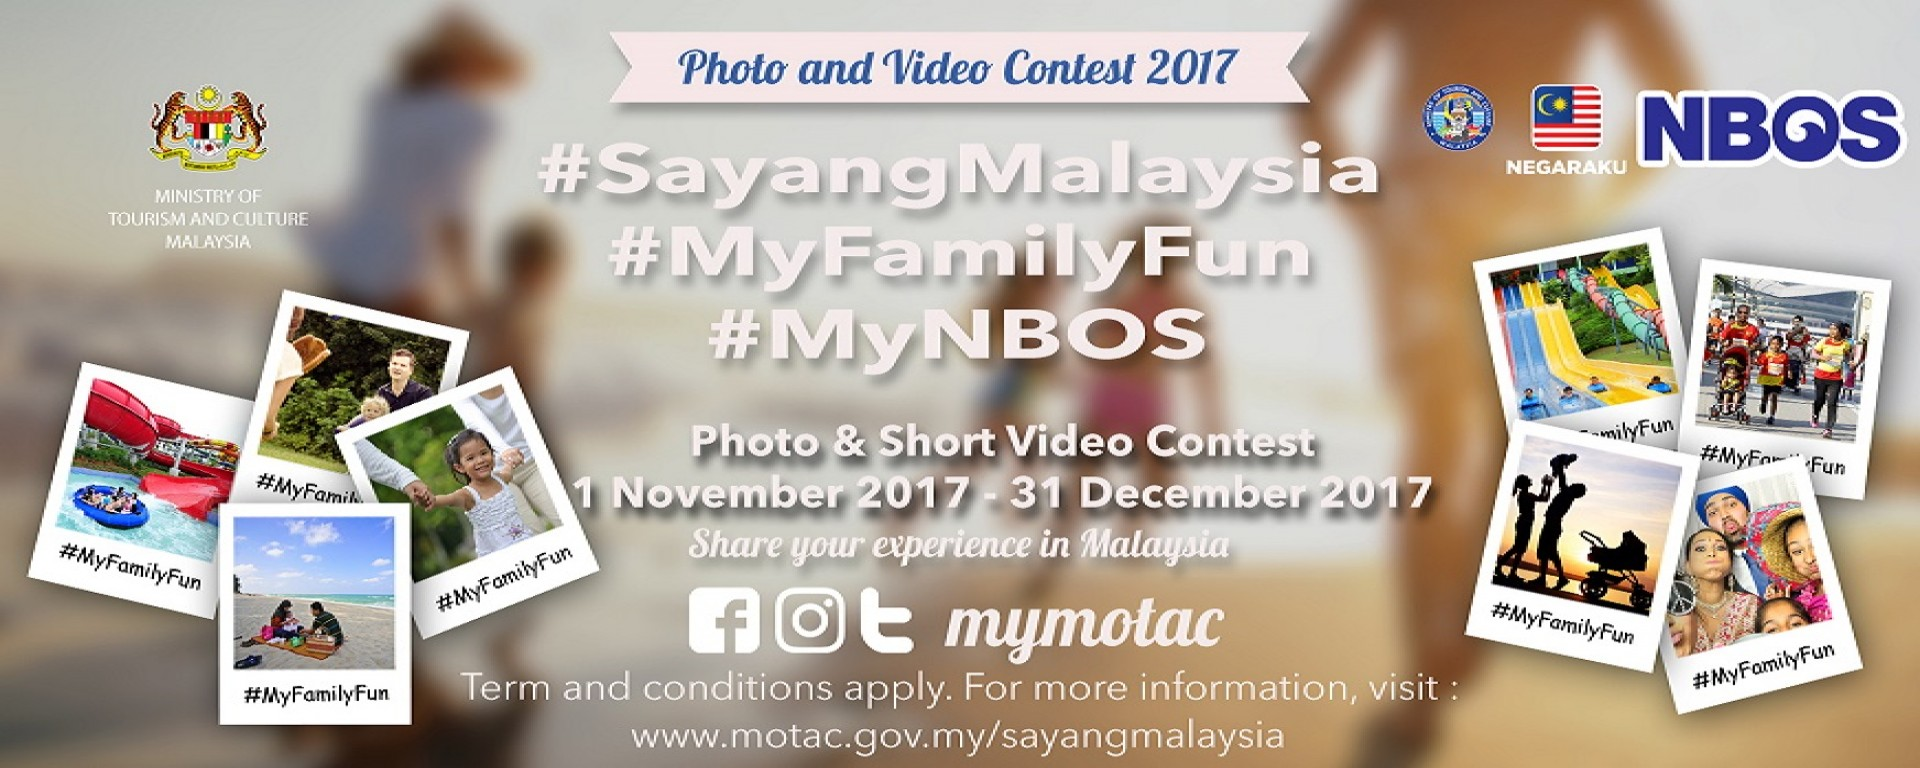 Sayang Malaysia November - December 2017 <div class='action'><a href='http://www.motac.gov.my/sayangmalaysia/' class='btn btn-danger btn-lg' target='_blank'>Find Out More</a></div>